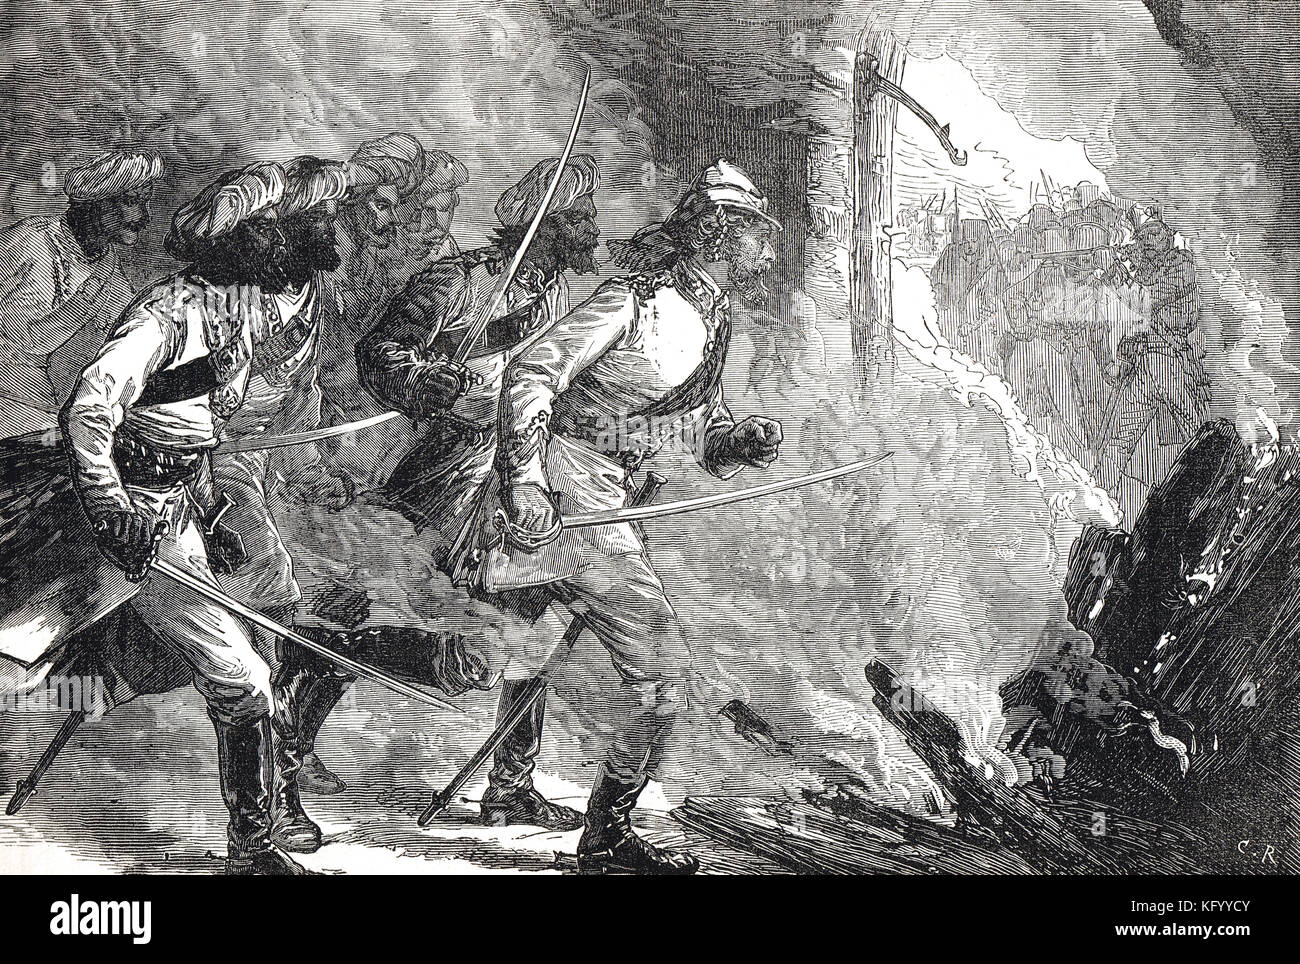 Lieutenant William Alexander Kerr's attack on a mutineers stronghold at Kolapore, India, 10 July 1857 - Stock Image